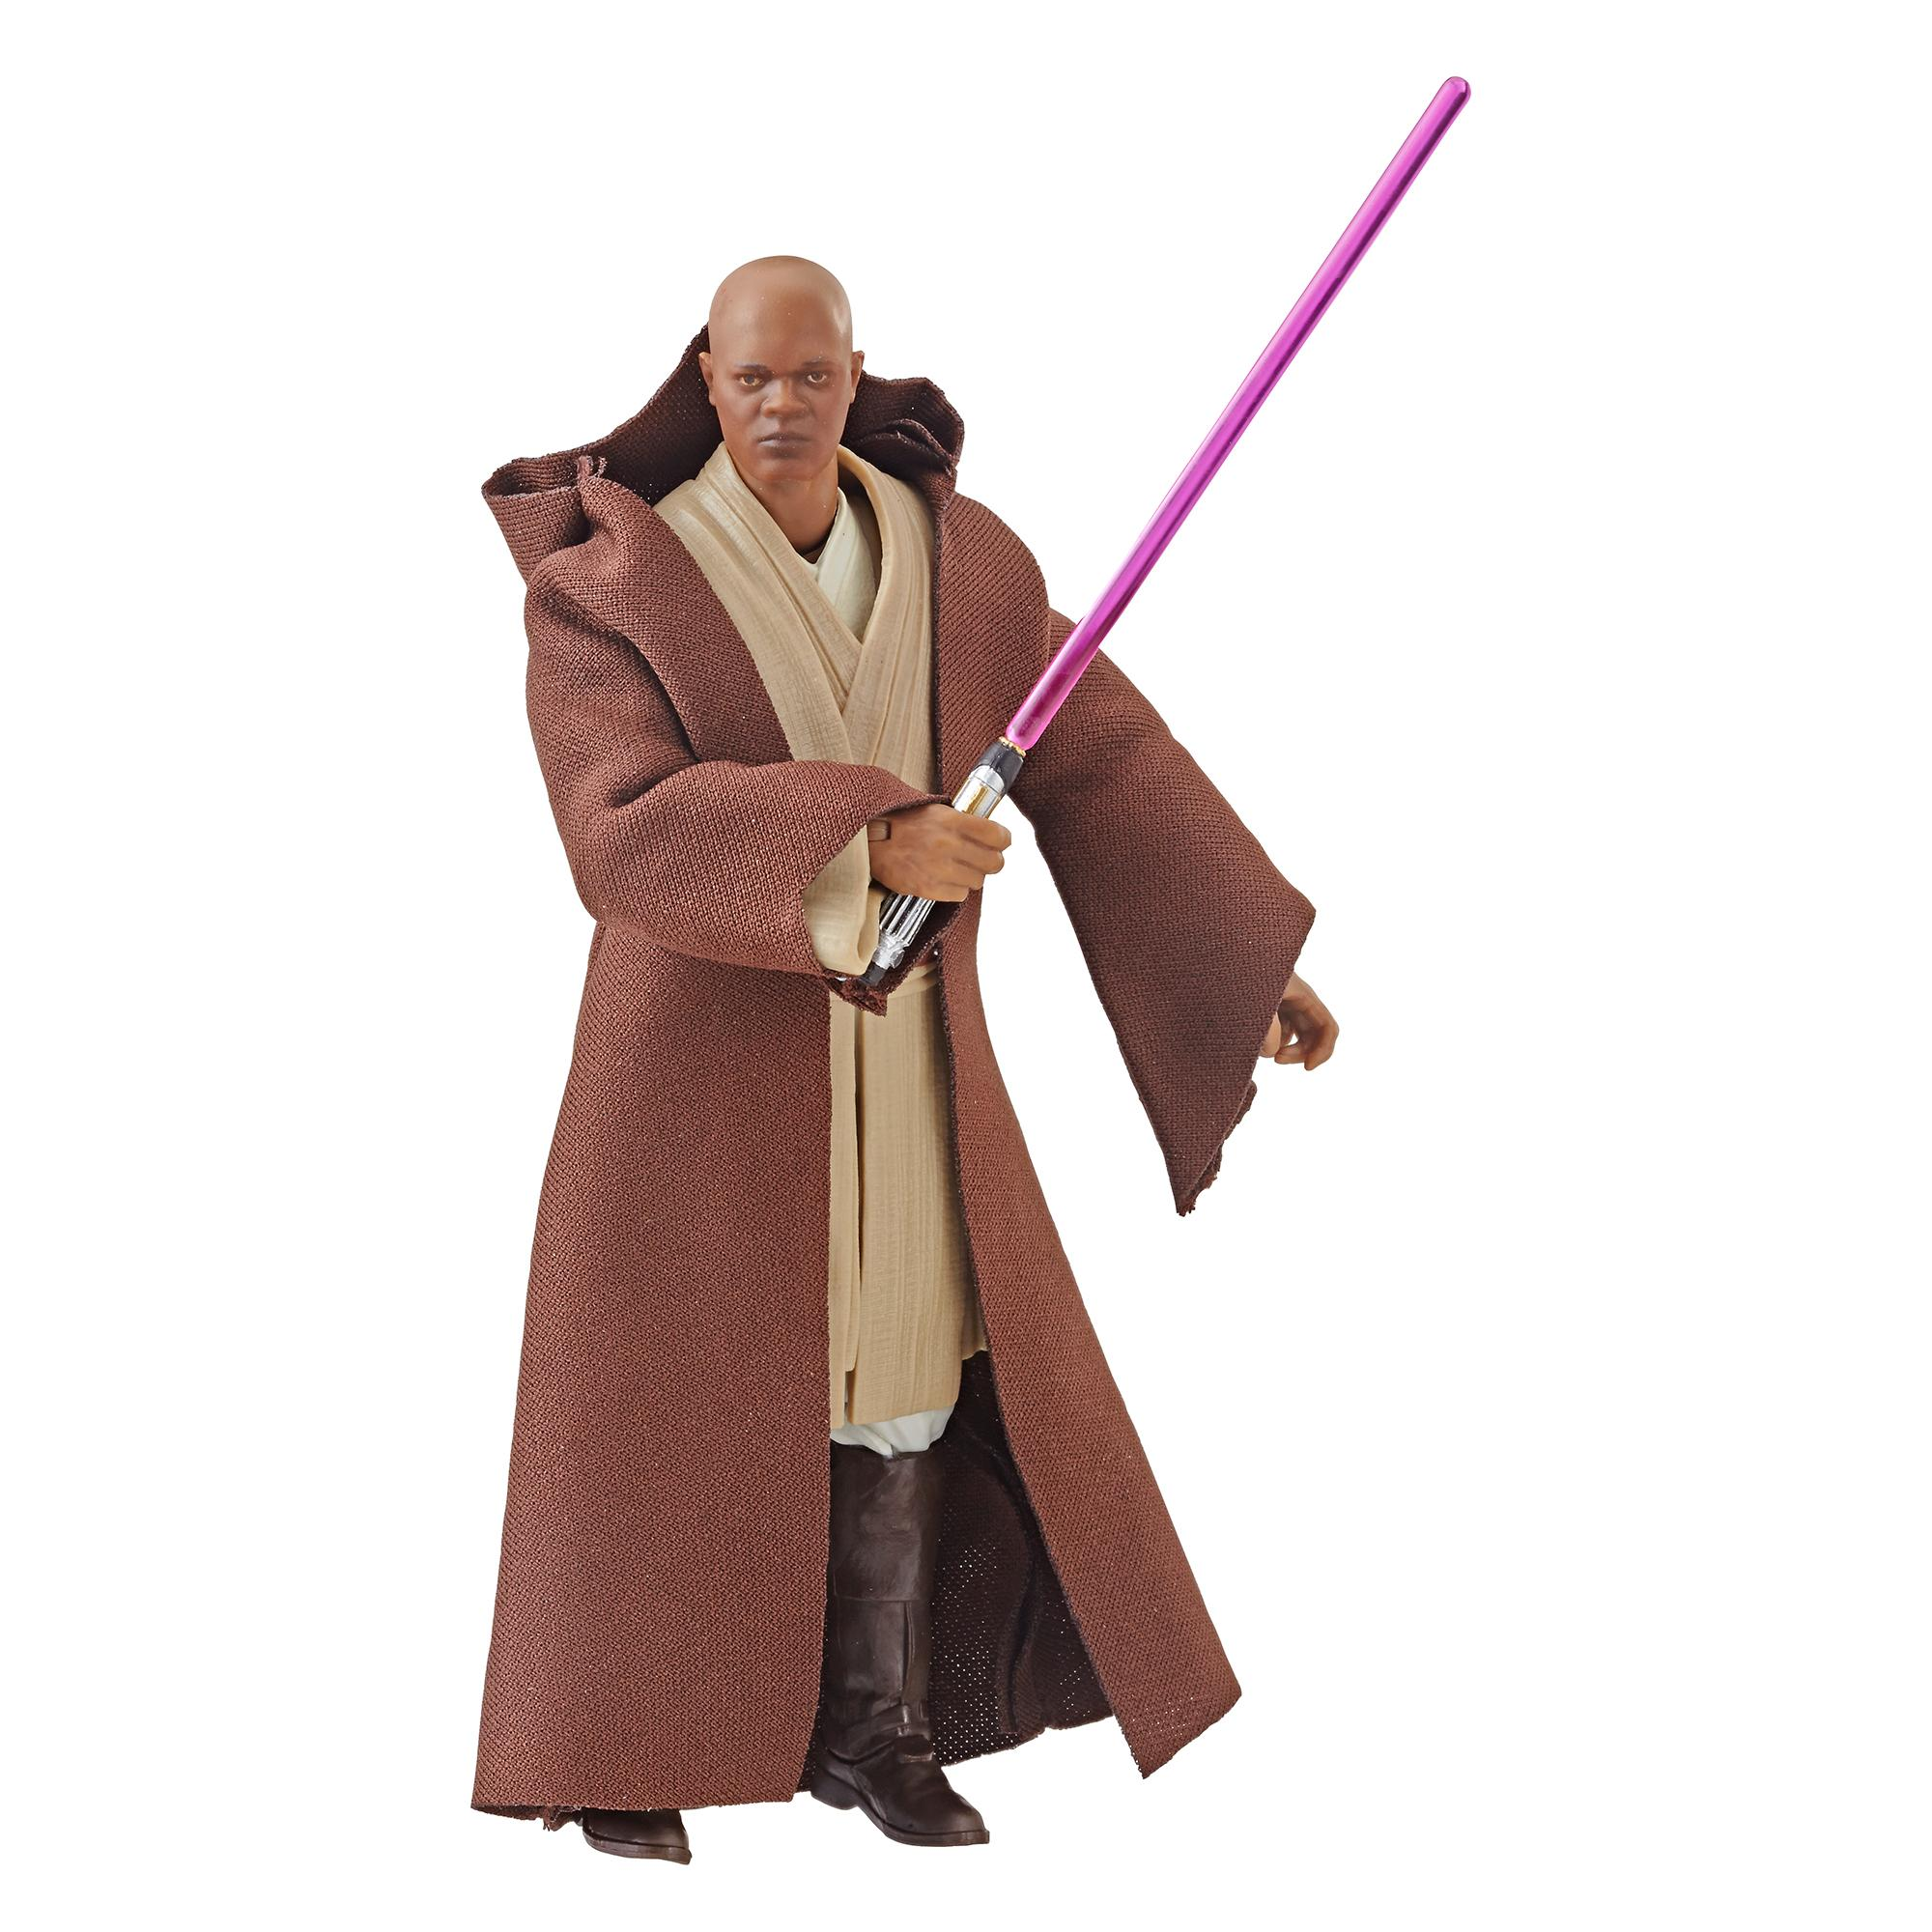 Star Wars The Black Series 6-inch Mace Windu Figure